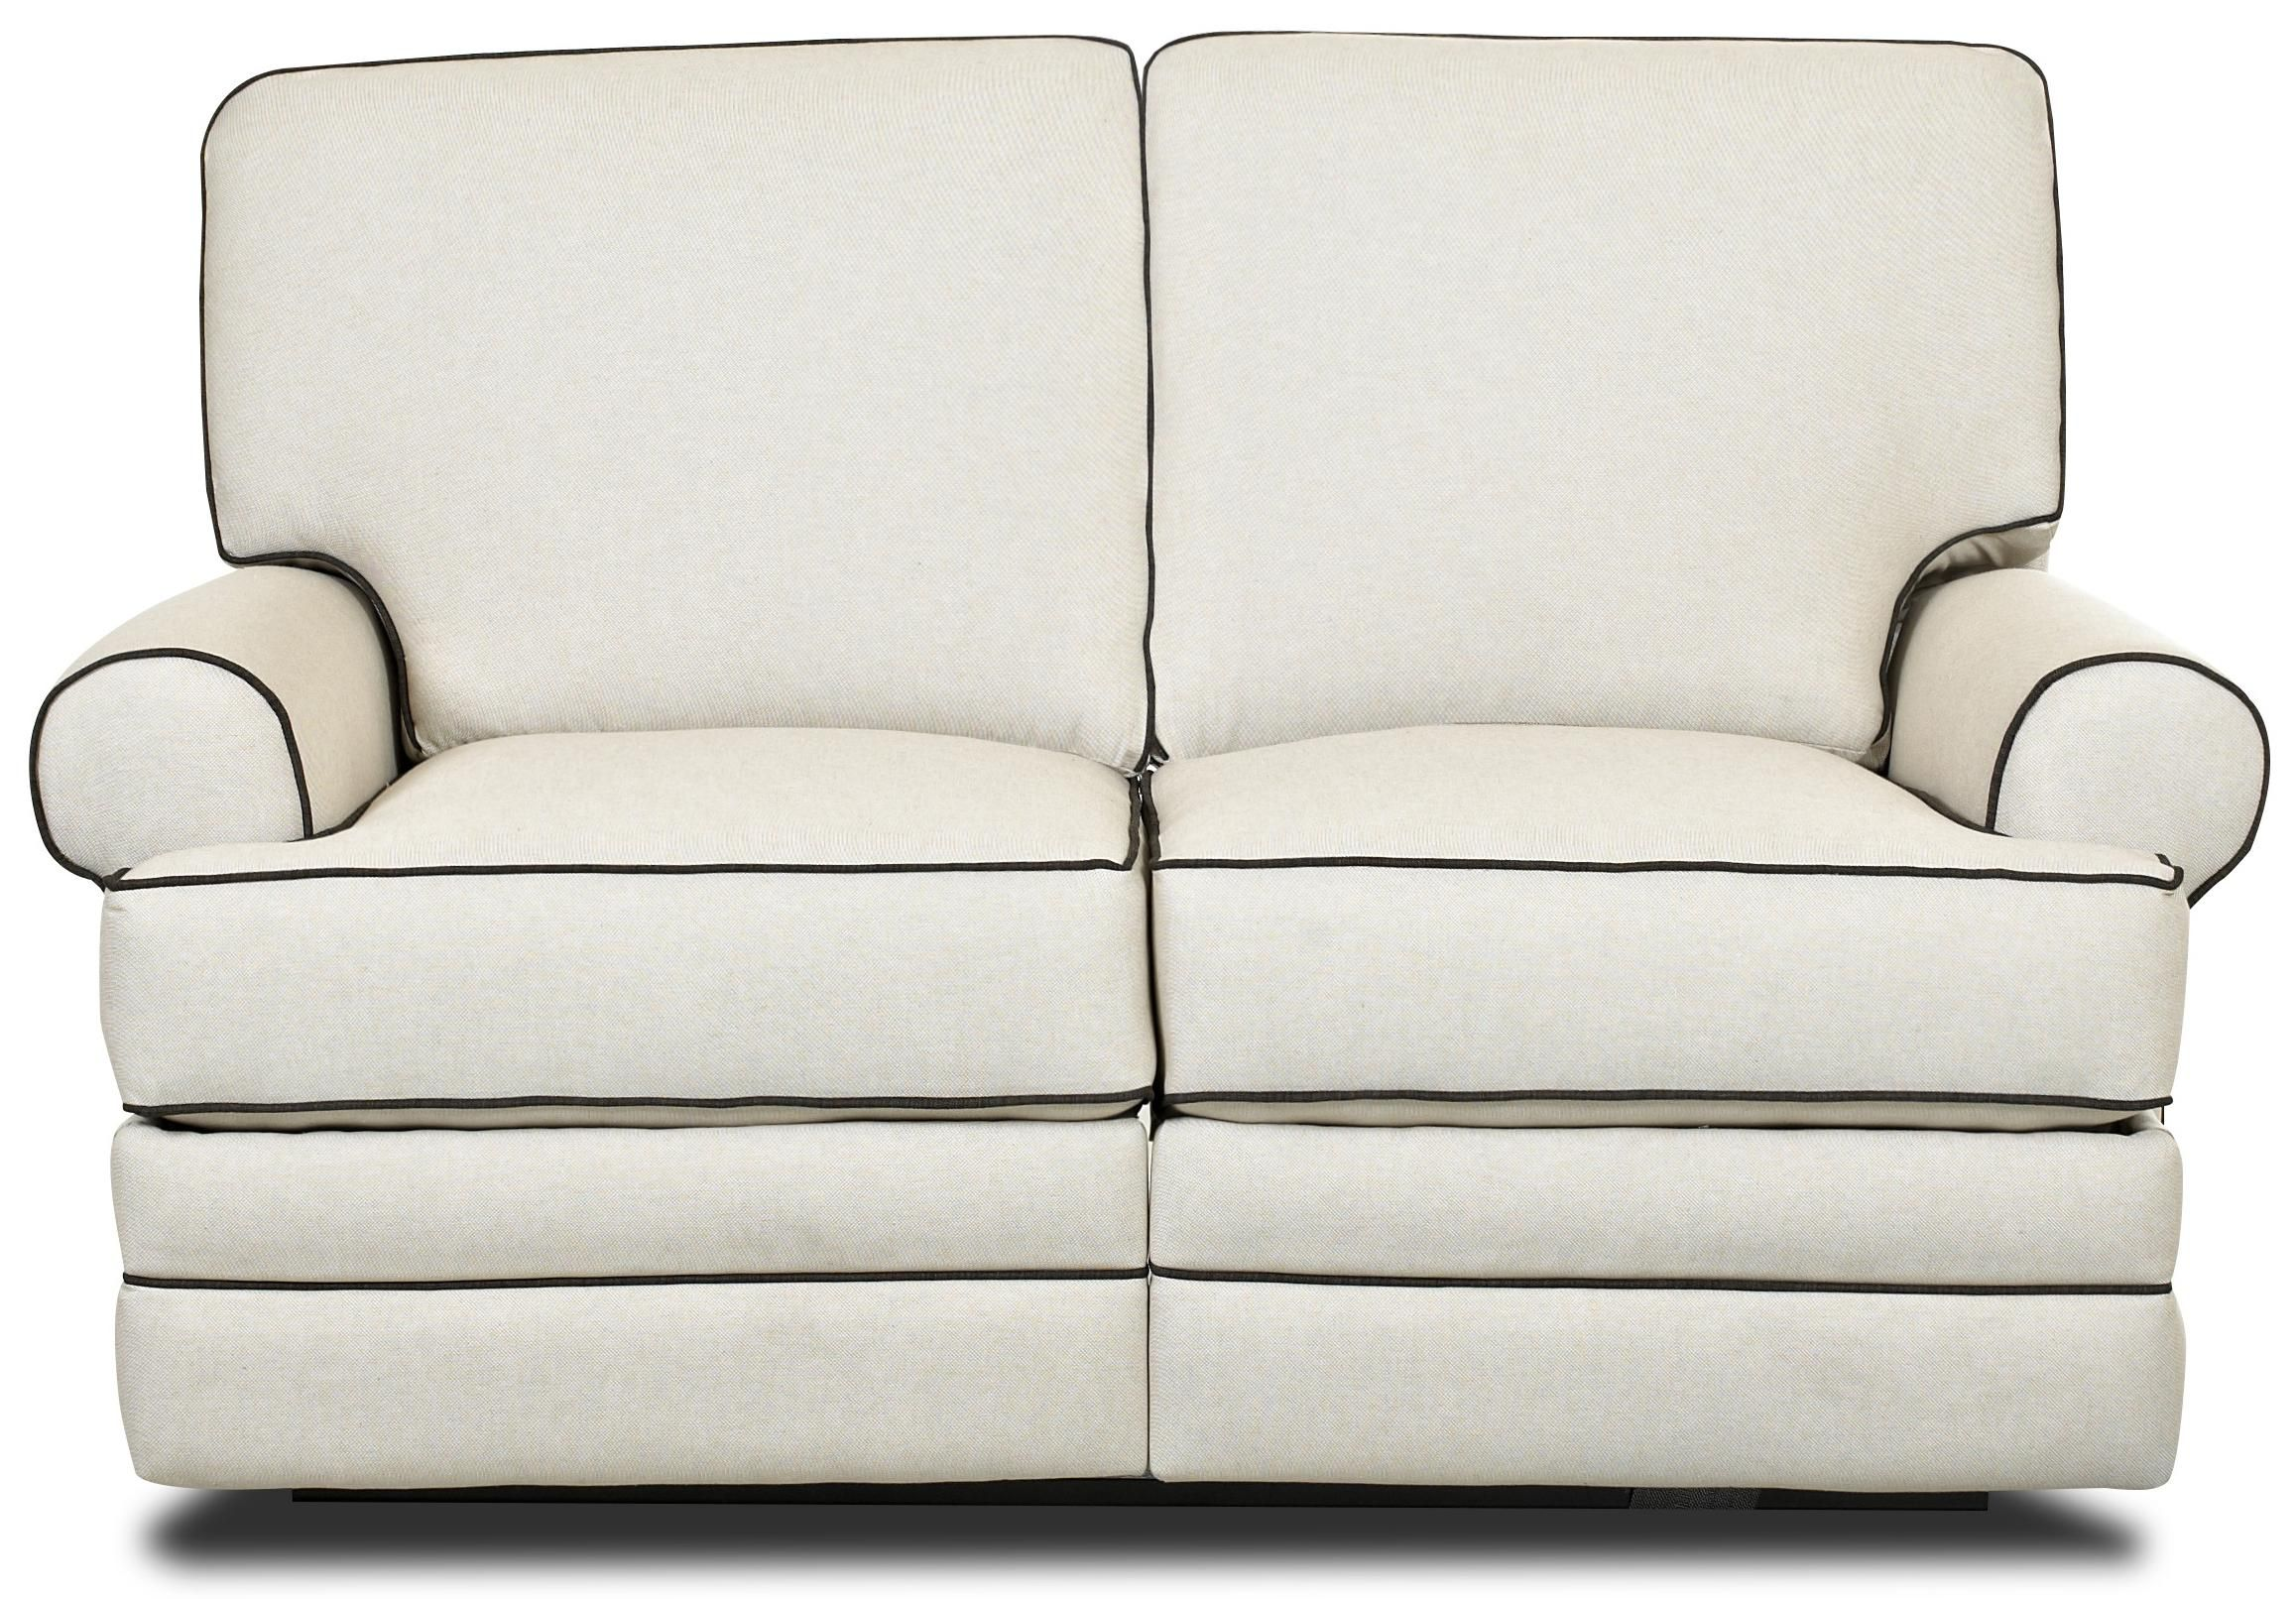 What Is A Couch Cover For Reclining Loveseat